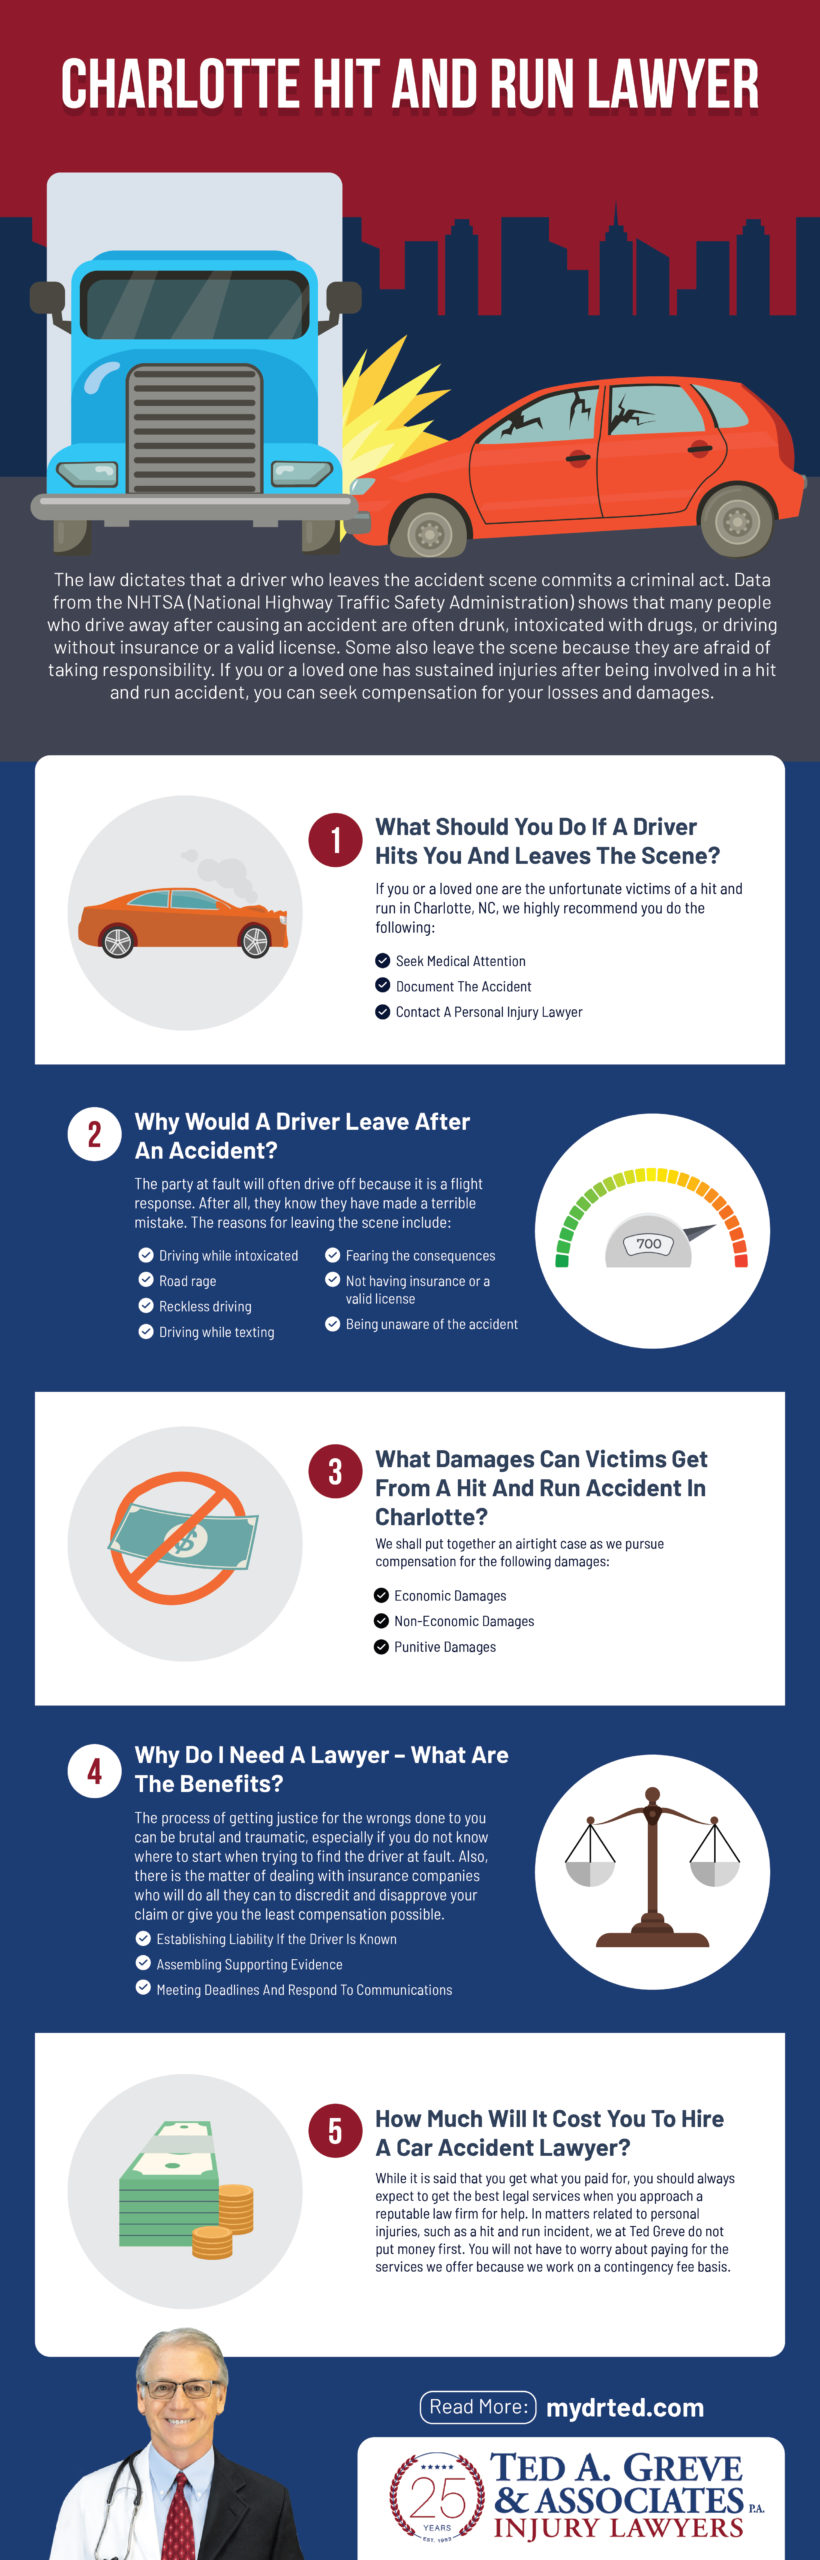 Ted Greve Charlotte Hit And Run Accident Infographic